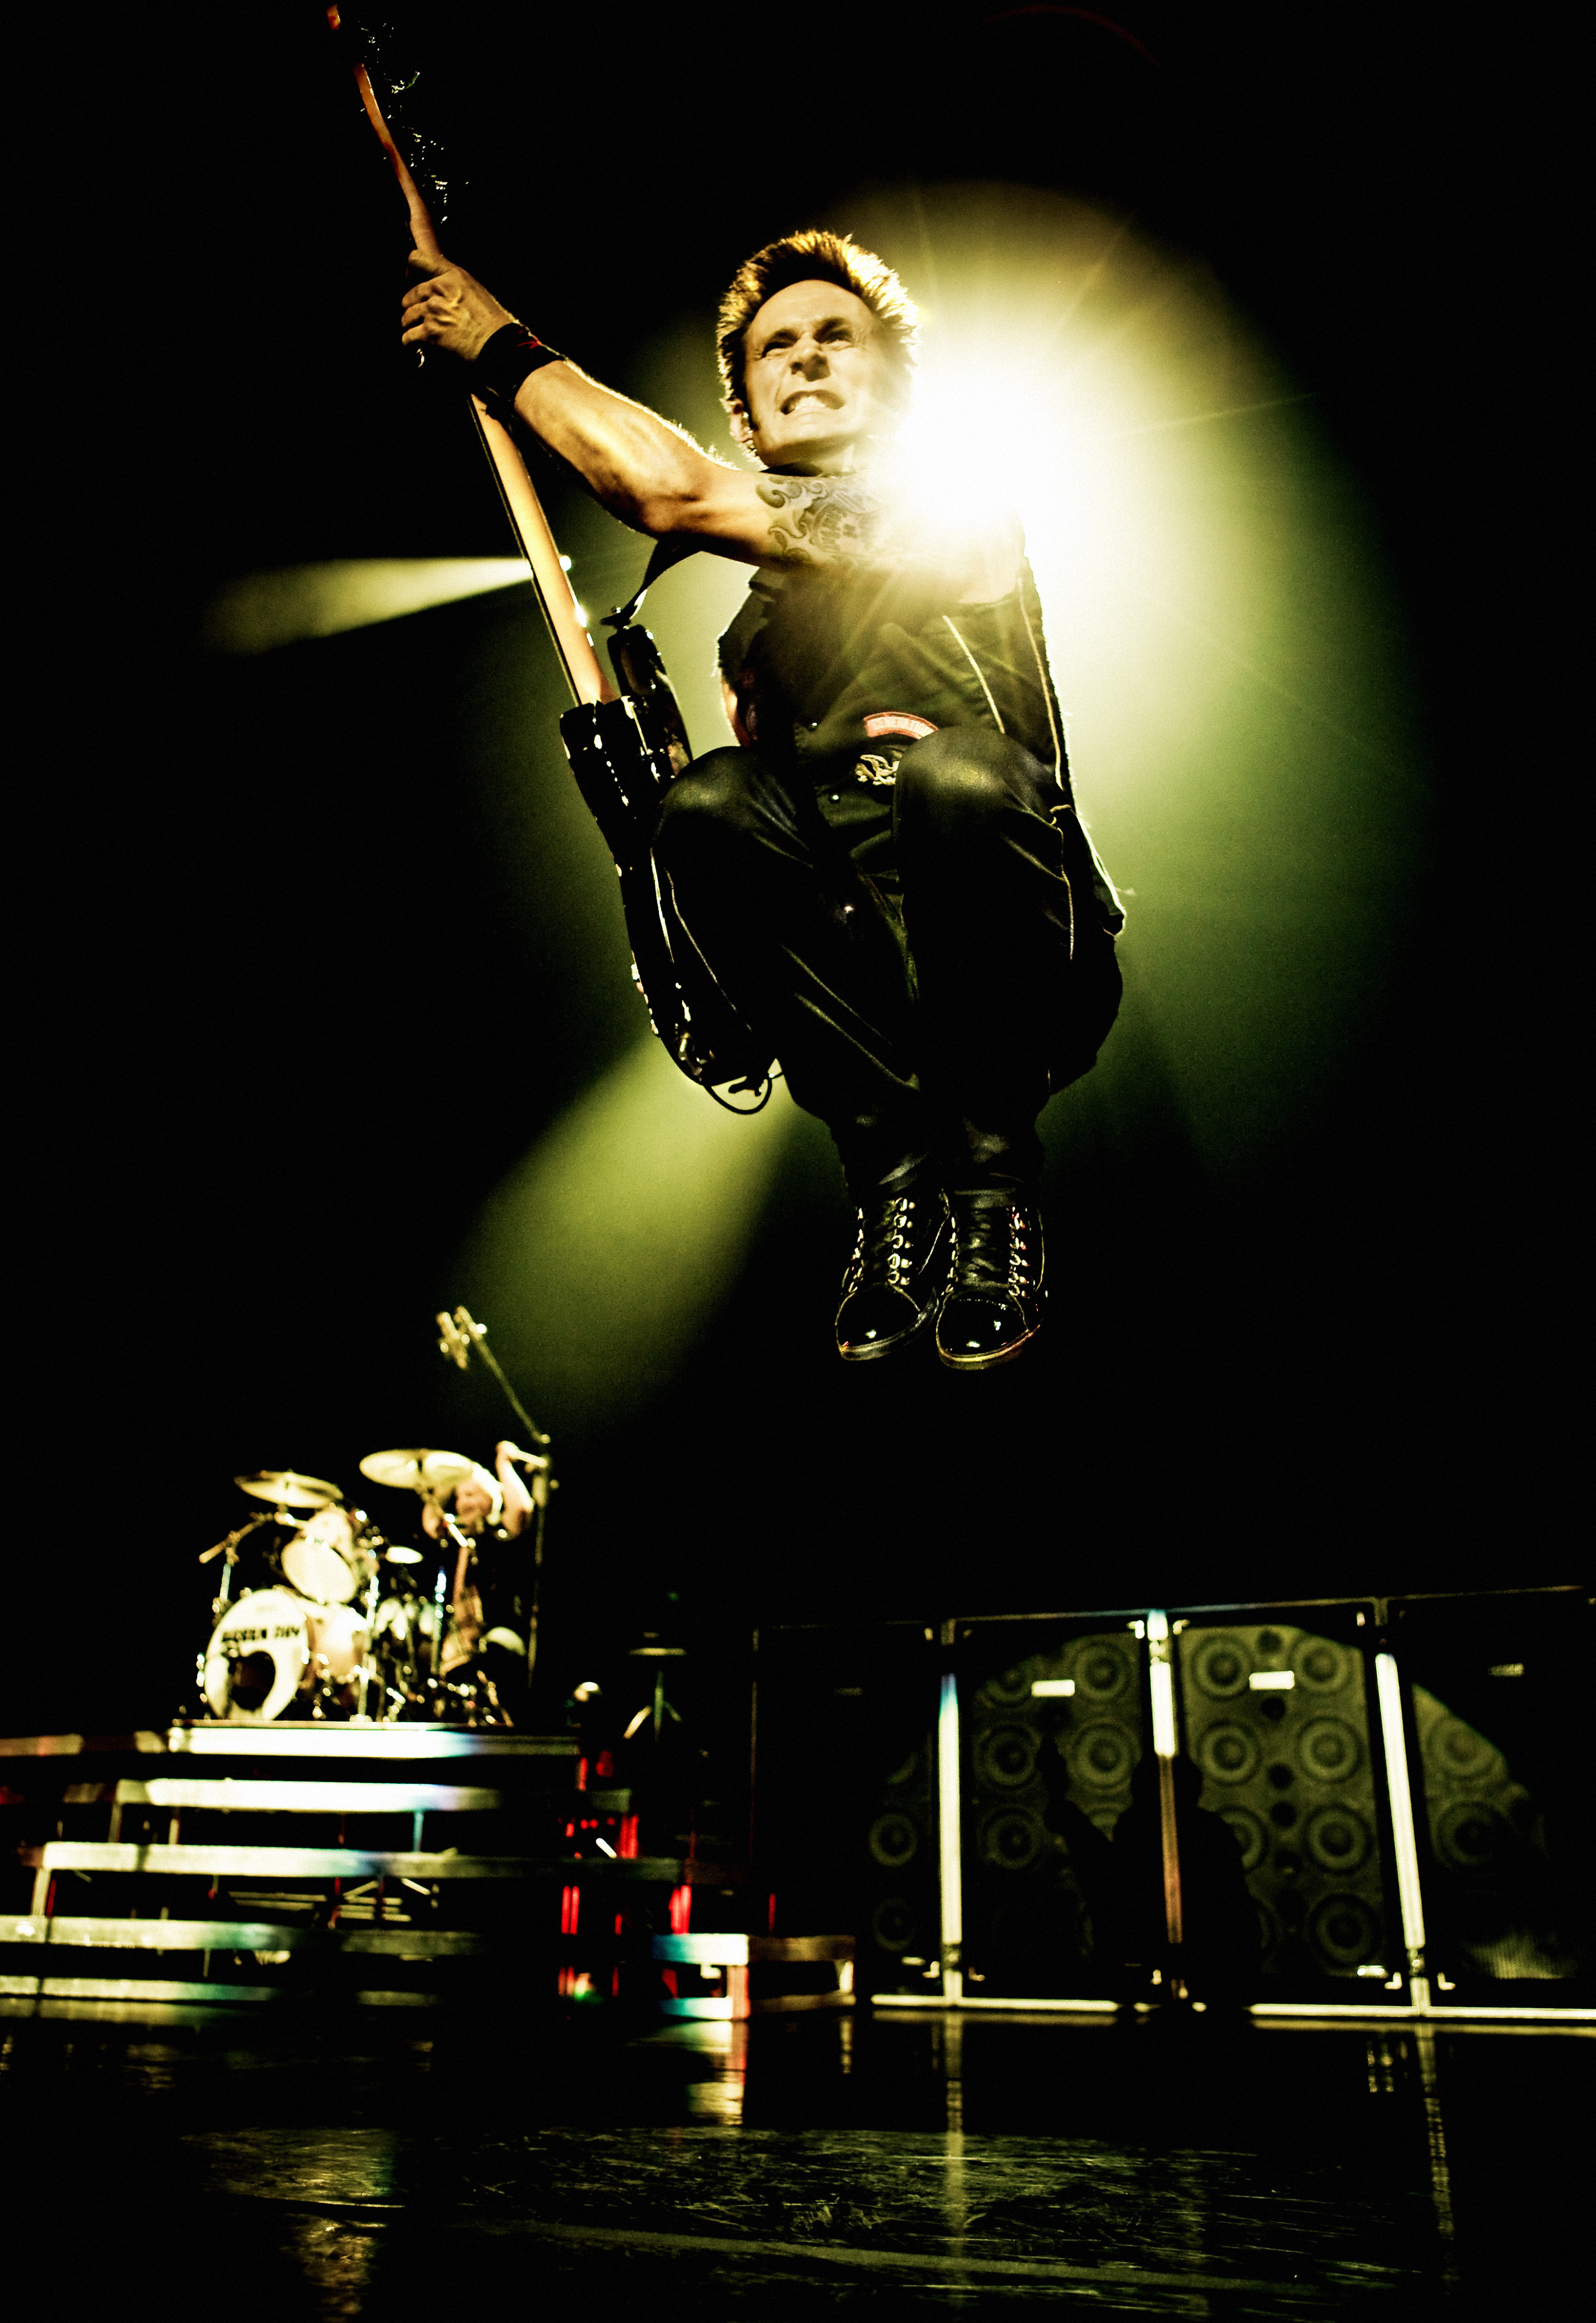 Mike Dirnt by Ash Newell